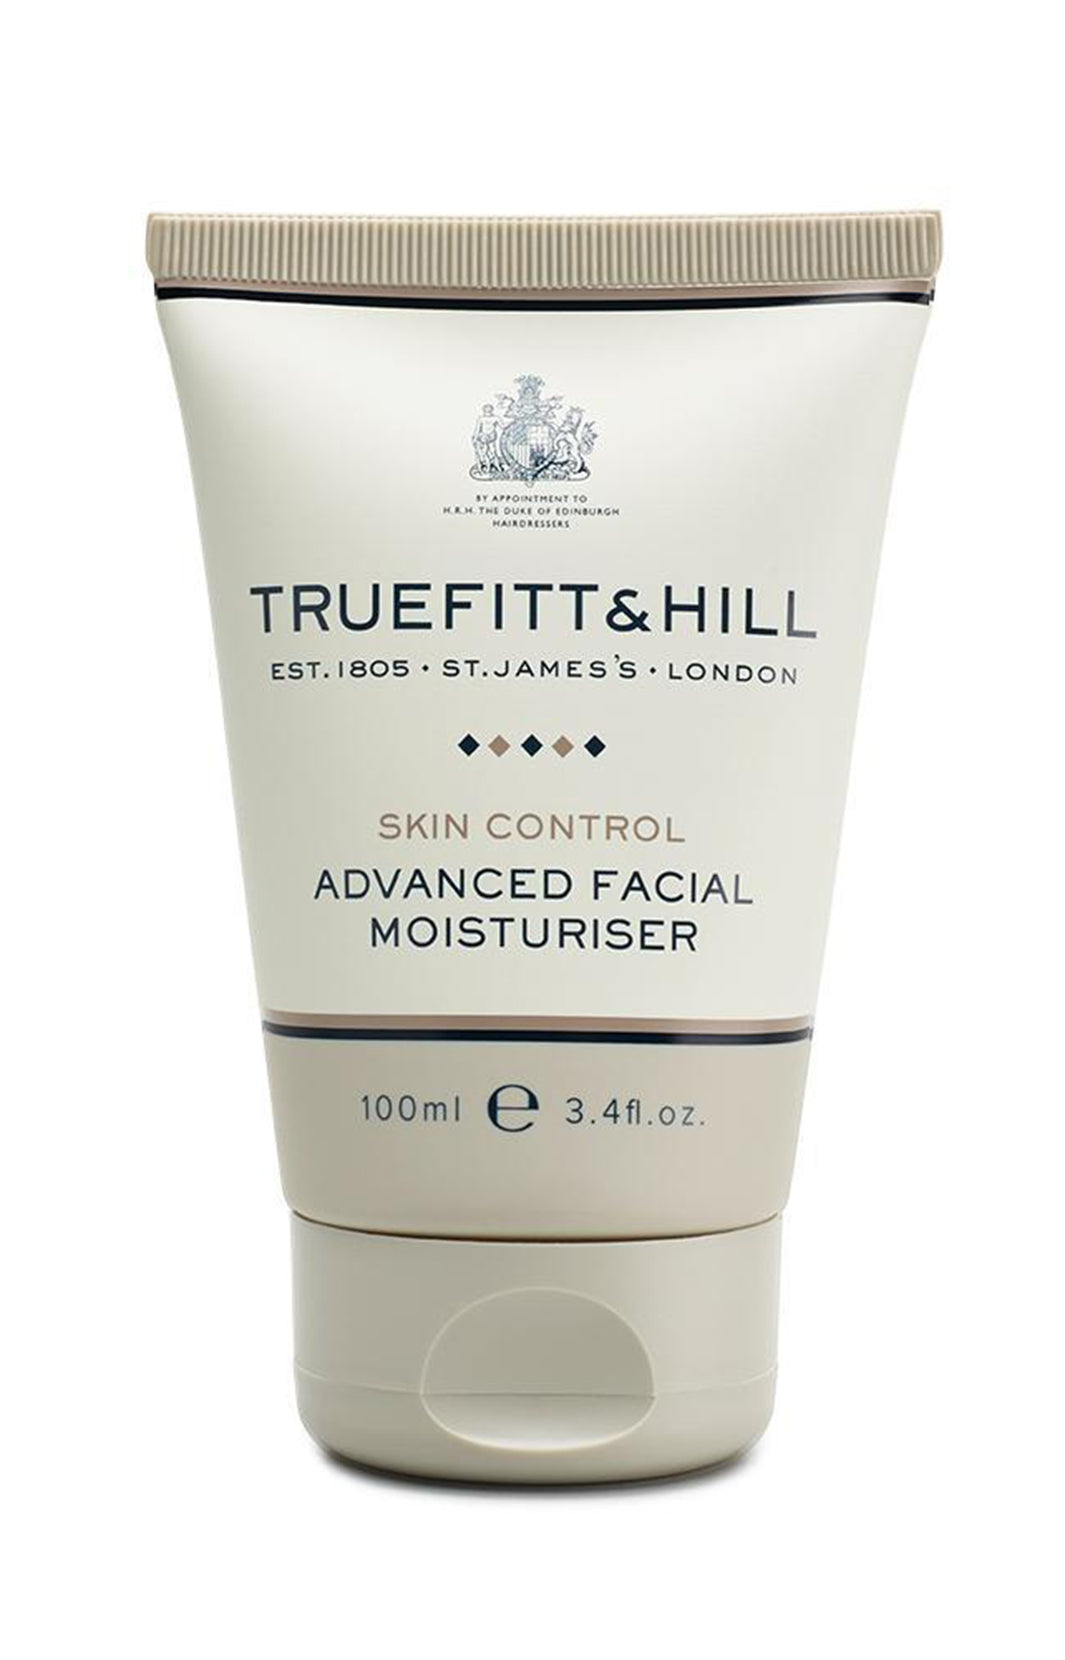 ADVANCED FACIAL MOISTURISER